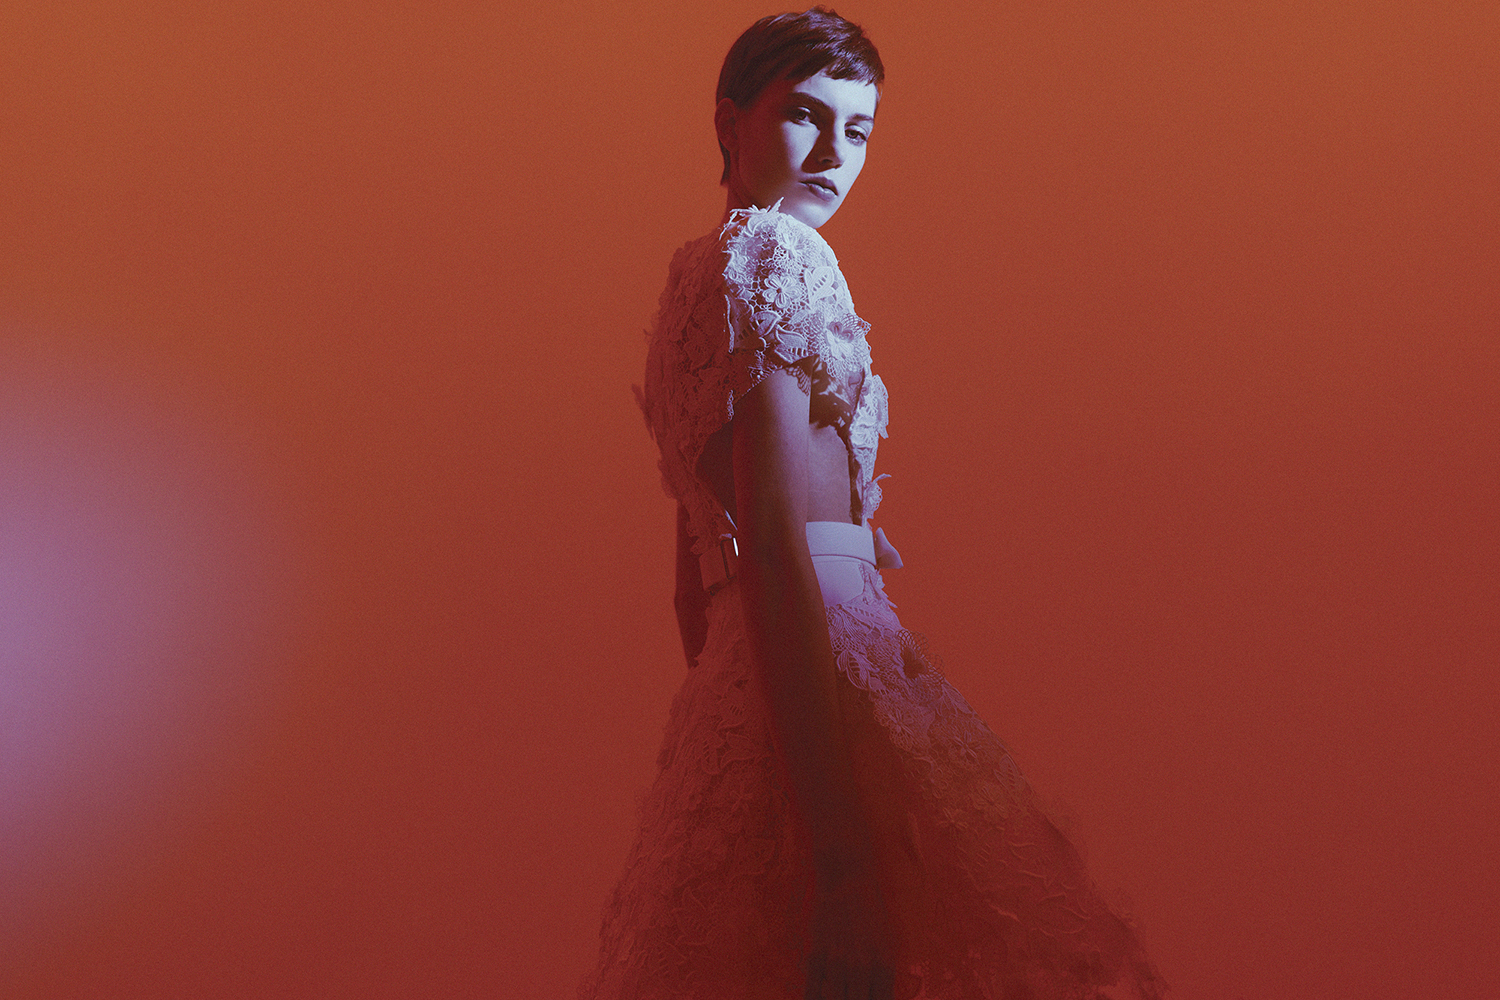 14 - Givenchy Haute Couture - Neil Krug.jpg